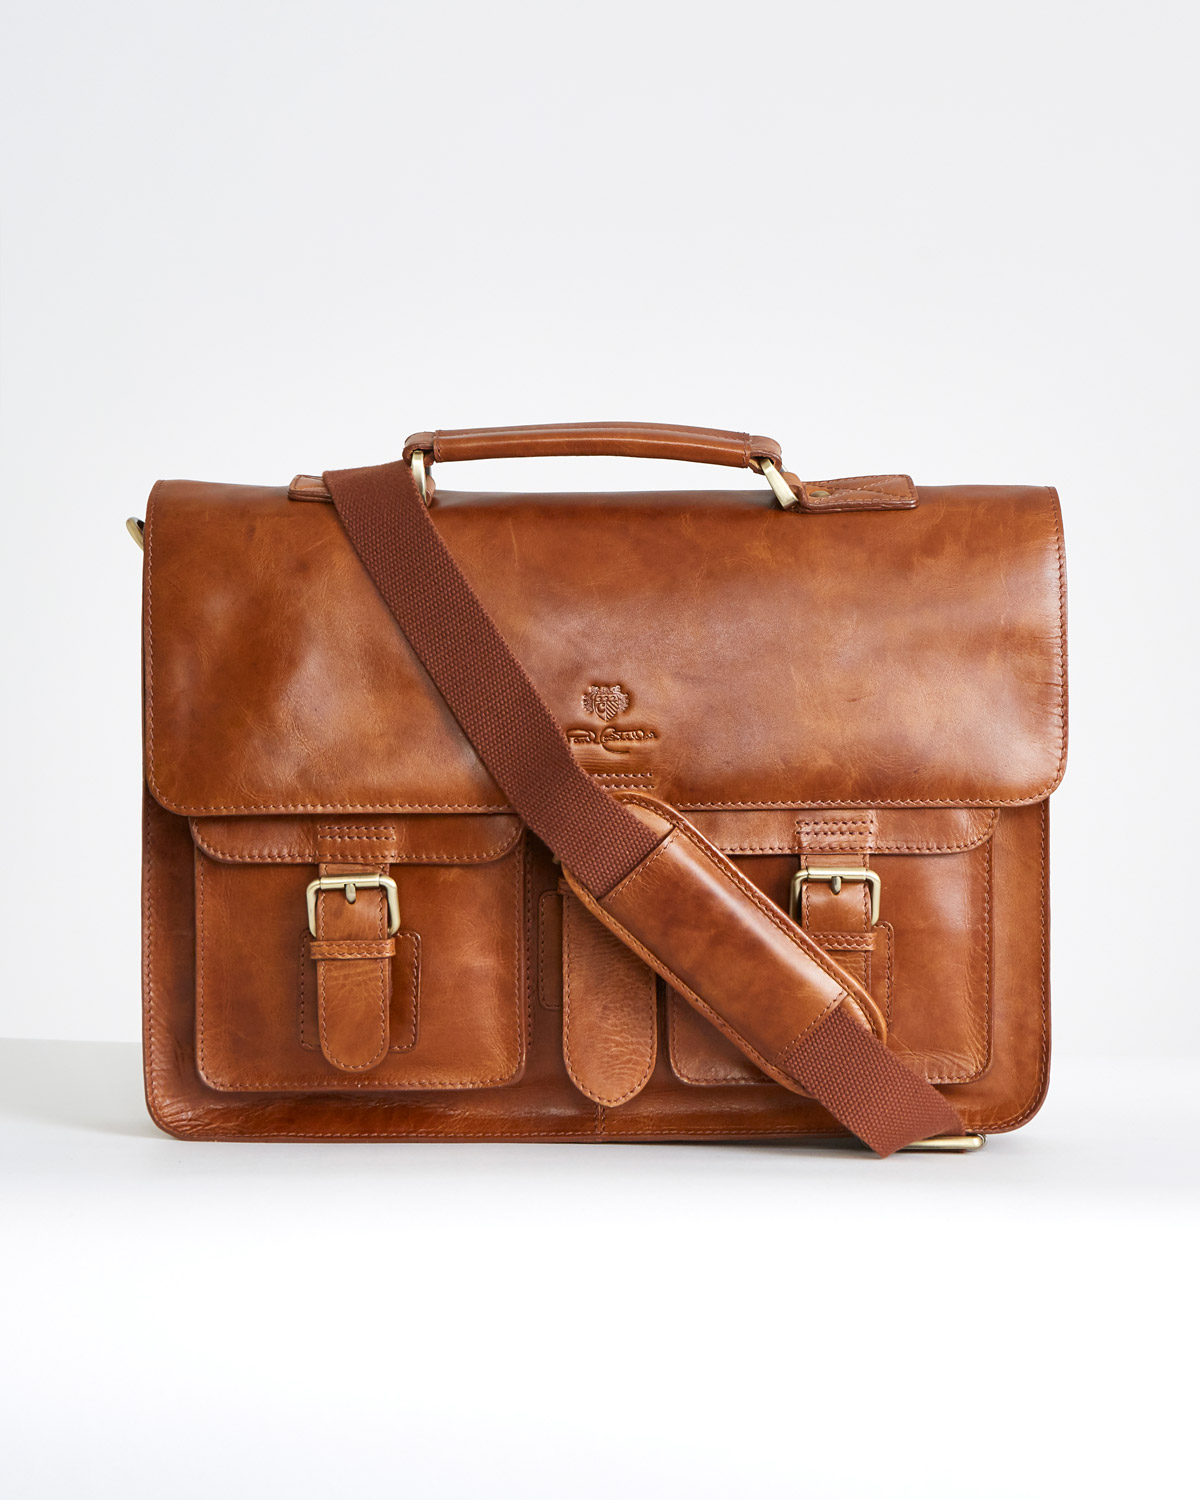 957830fca7bb Paul Costelloe Living Leather Briefcase